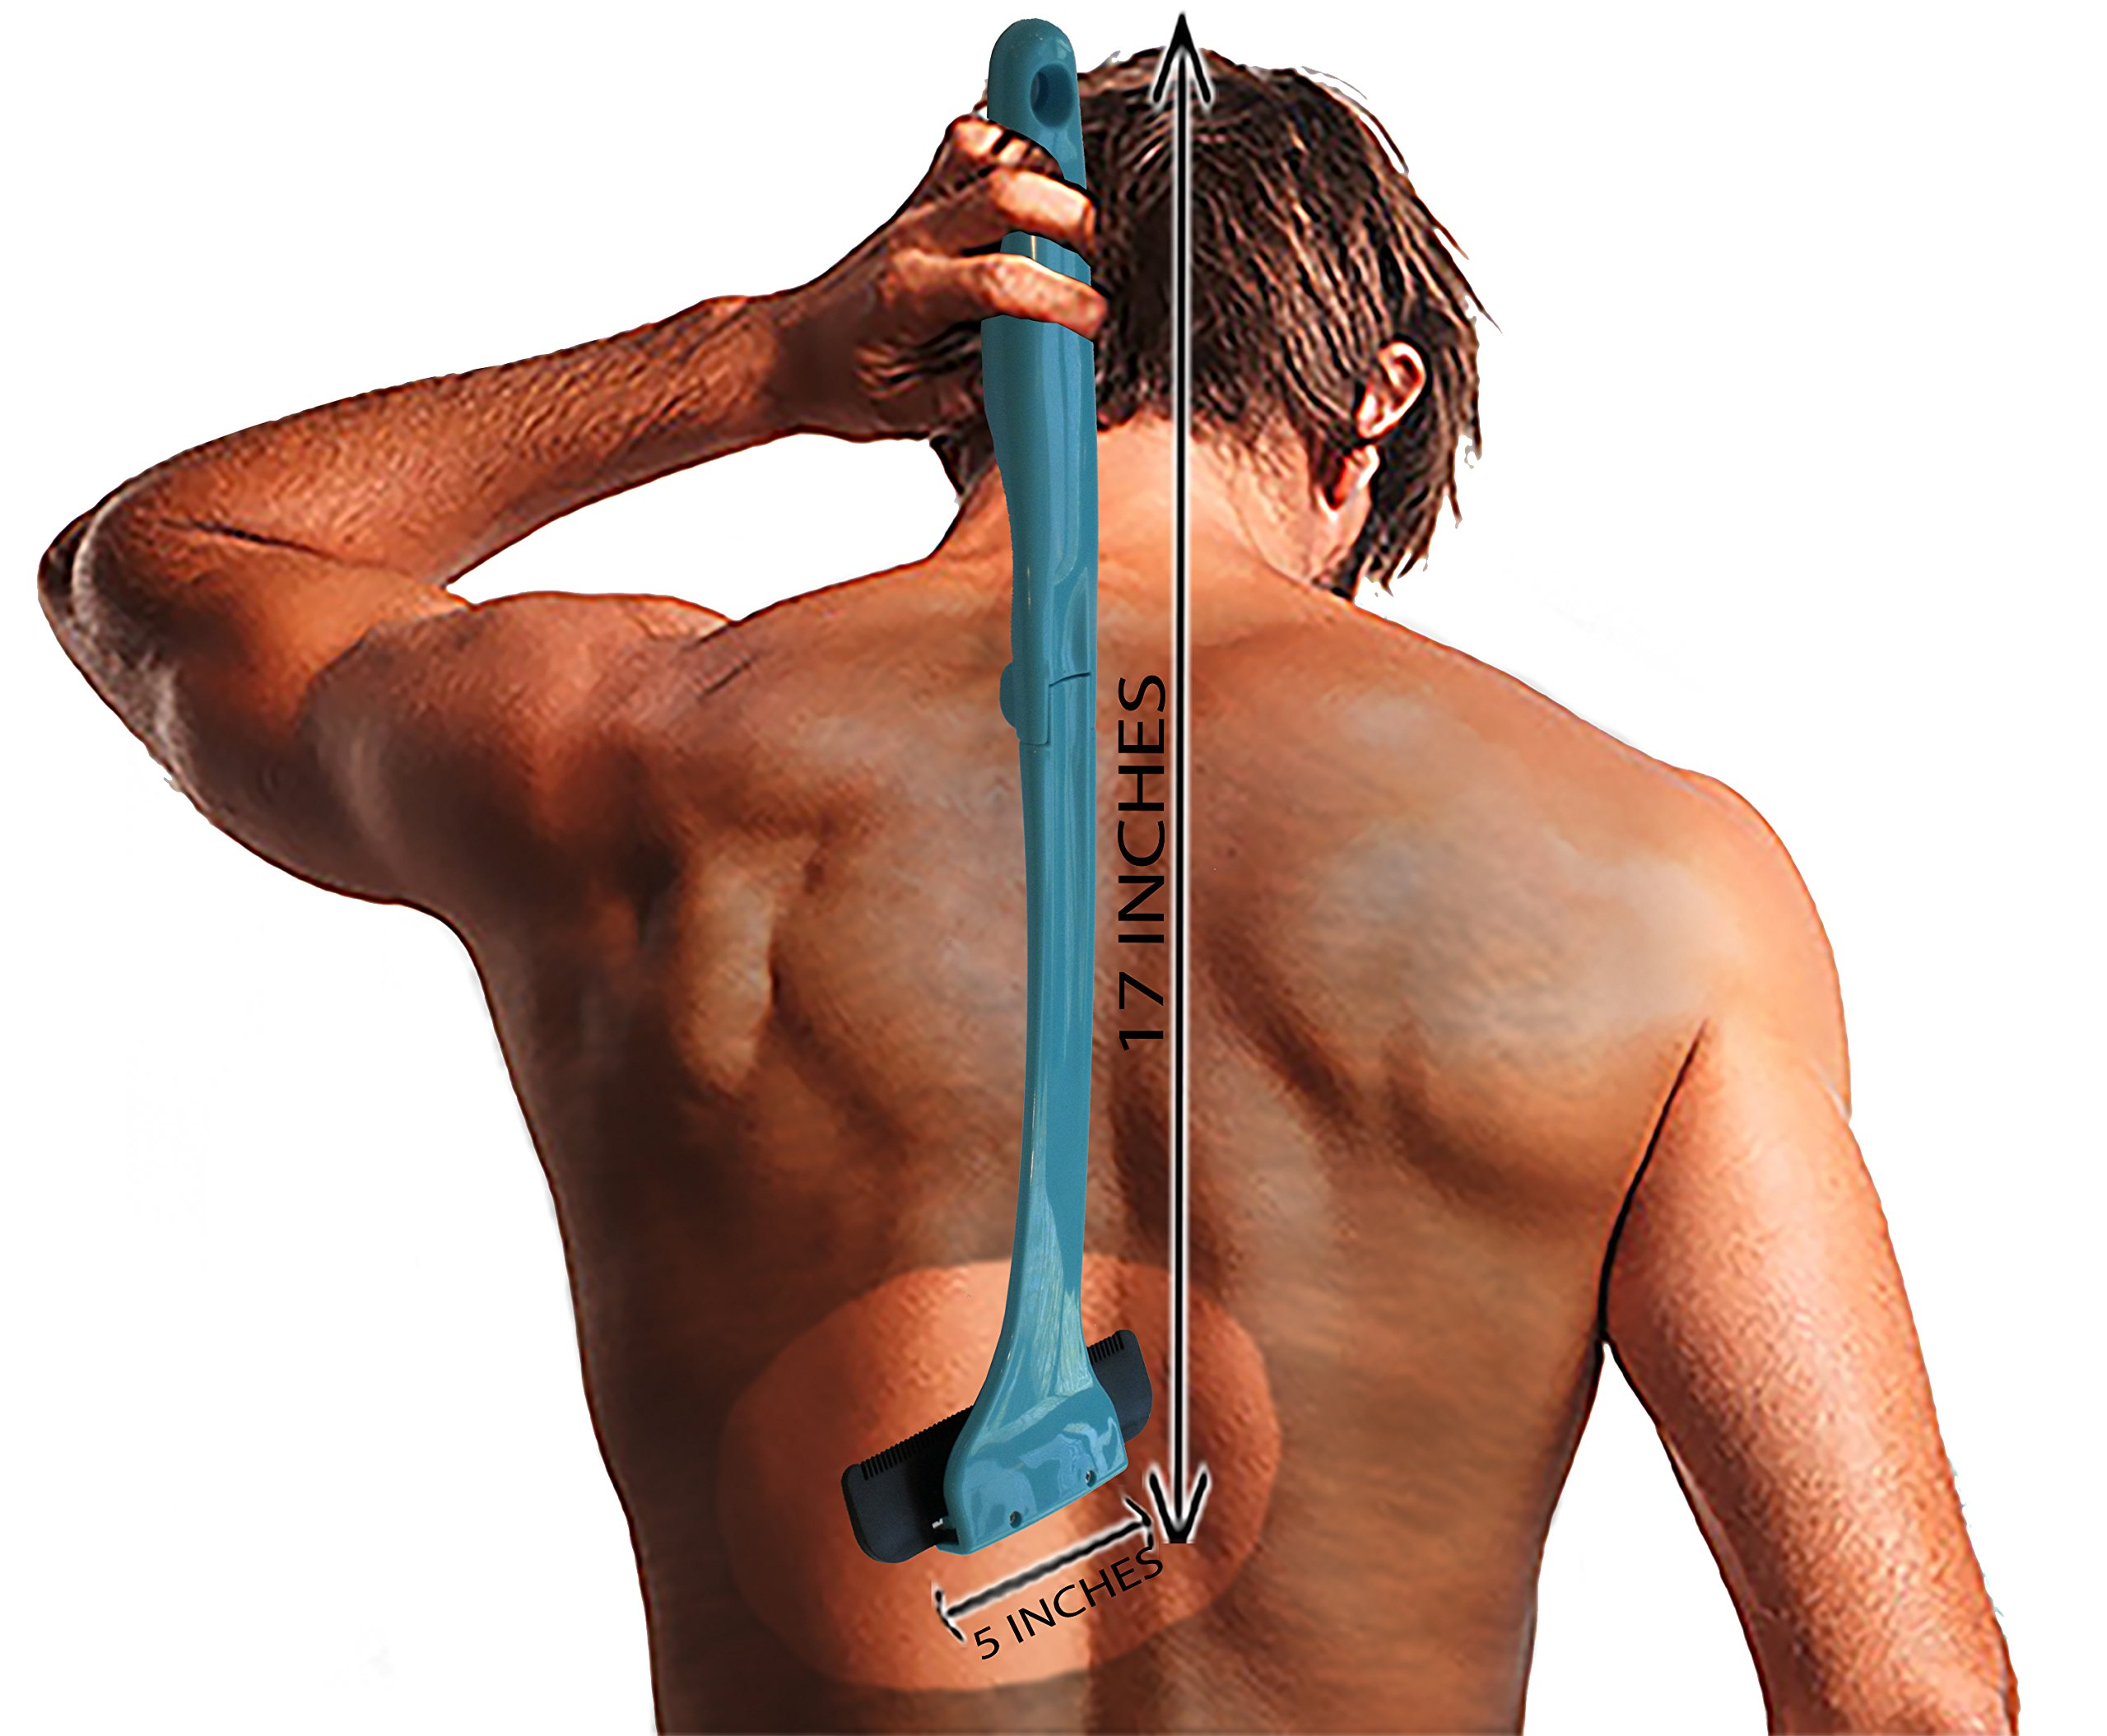 Back Shaver and Body Hair Removal for Men and Women. Handheld Do-it-Yourself Body Grooming Safety Razor Pain-Free Back Hair Removal